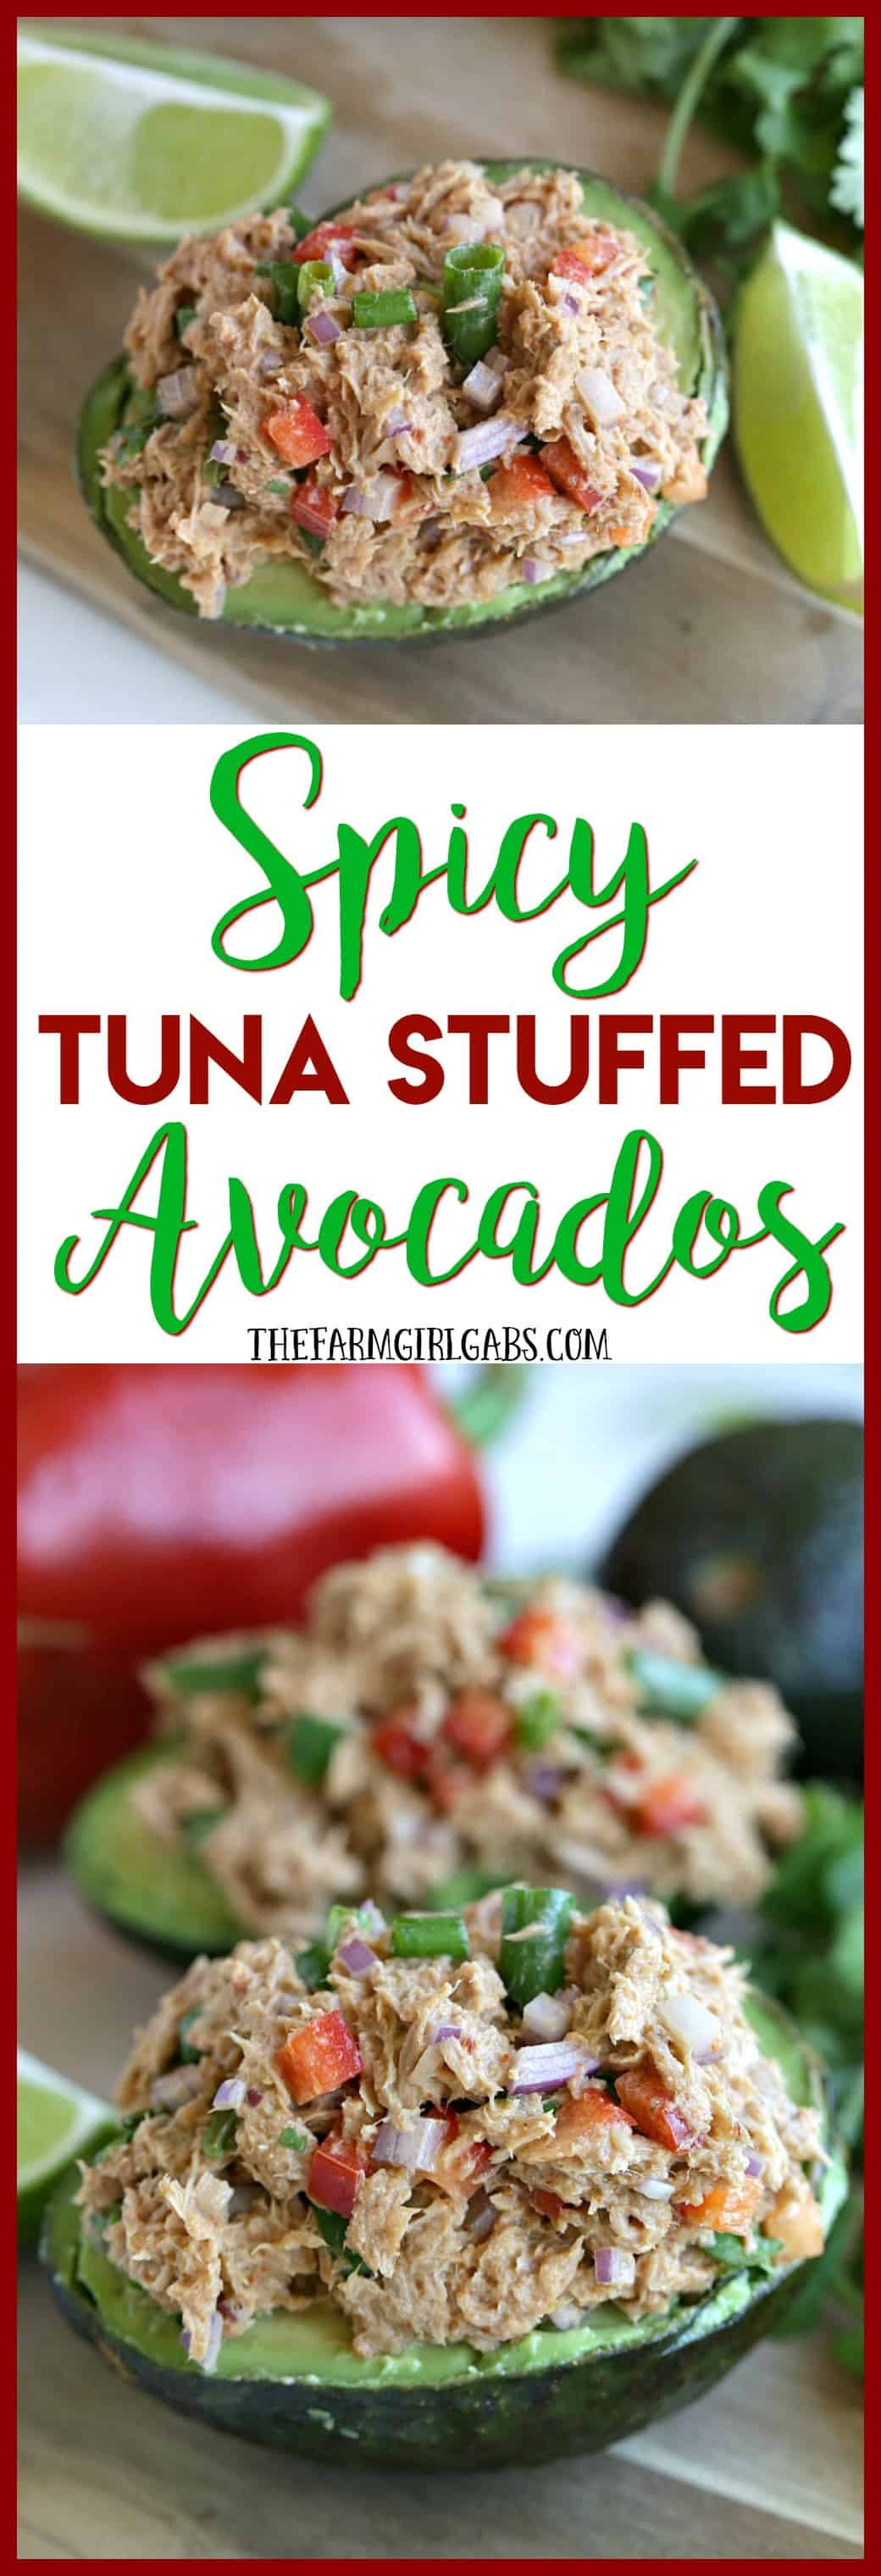 Bold & Balanced. This Spicy Tuna Stuffed Avocados recipe has plenty of bold flavor balanced by the cool avocado. Add some zip to your lunch or dinner menu with this easy recipe. #TearEatGo #Ad